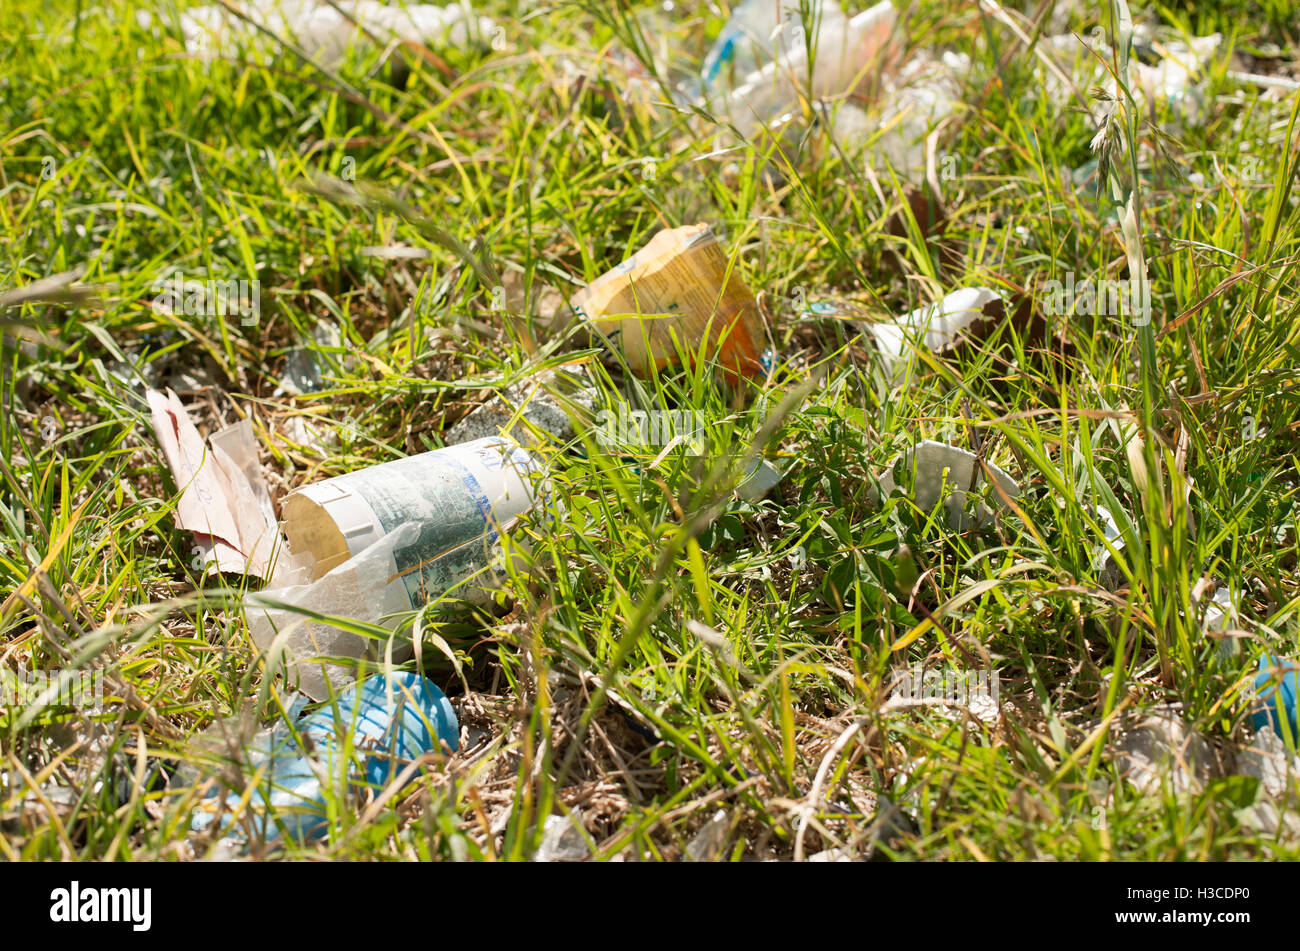 Trash littered on the ground - Stock Image